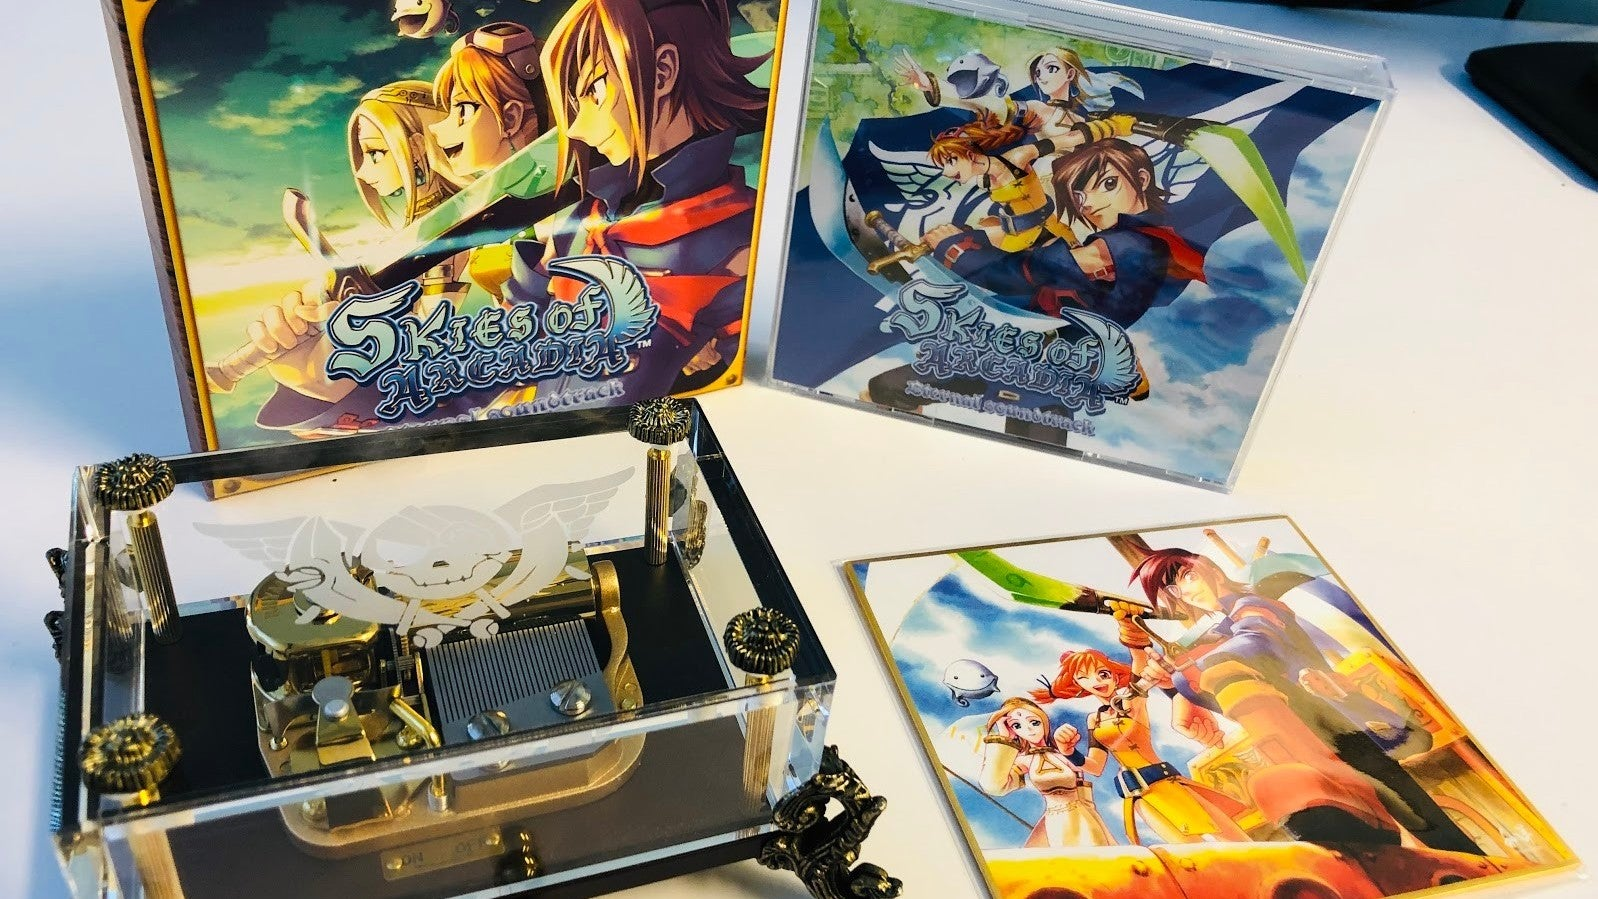 This Skies Of Arcadia Music Box Is Making My Heart Melt